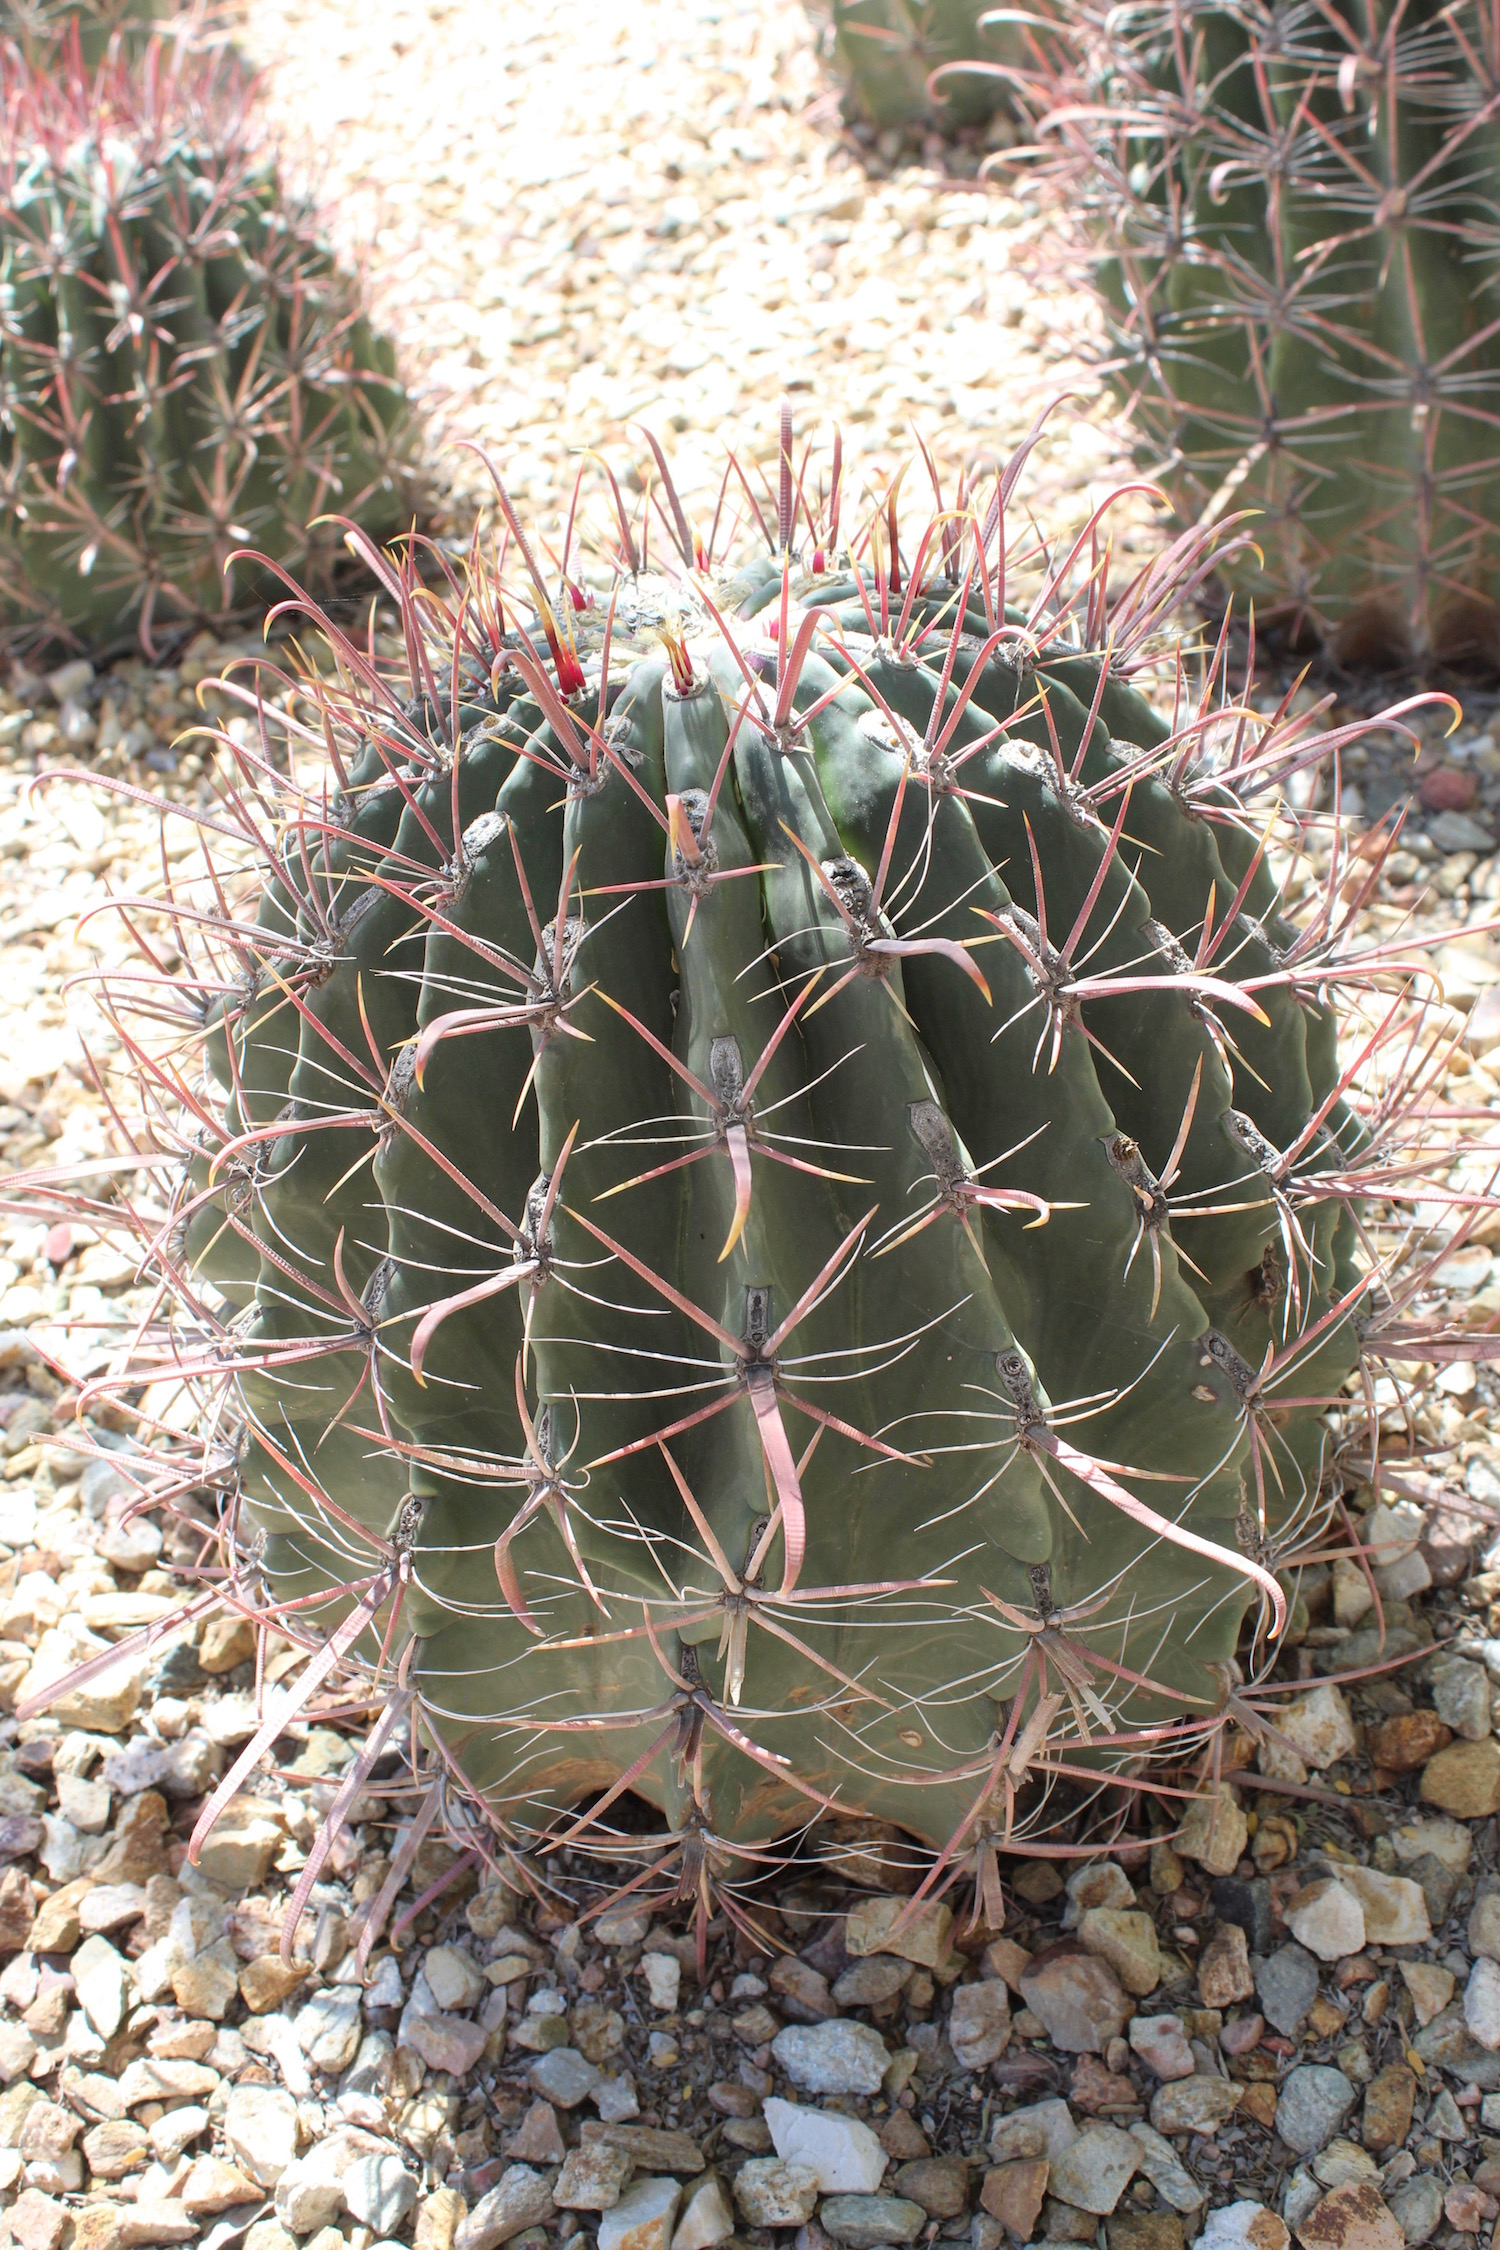 Fishhook Barrel Cactus - named for obvious reasons